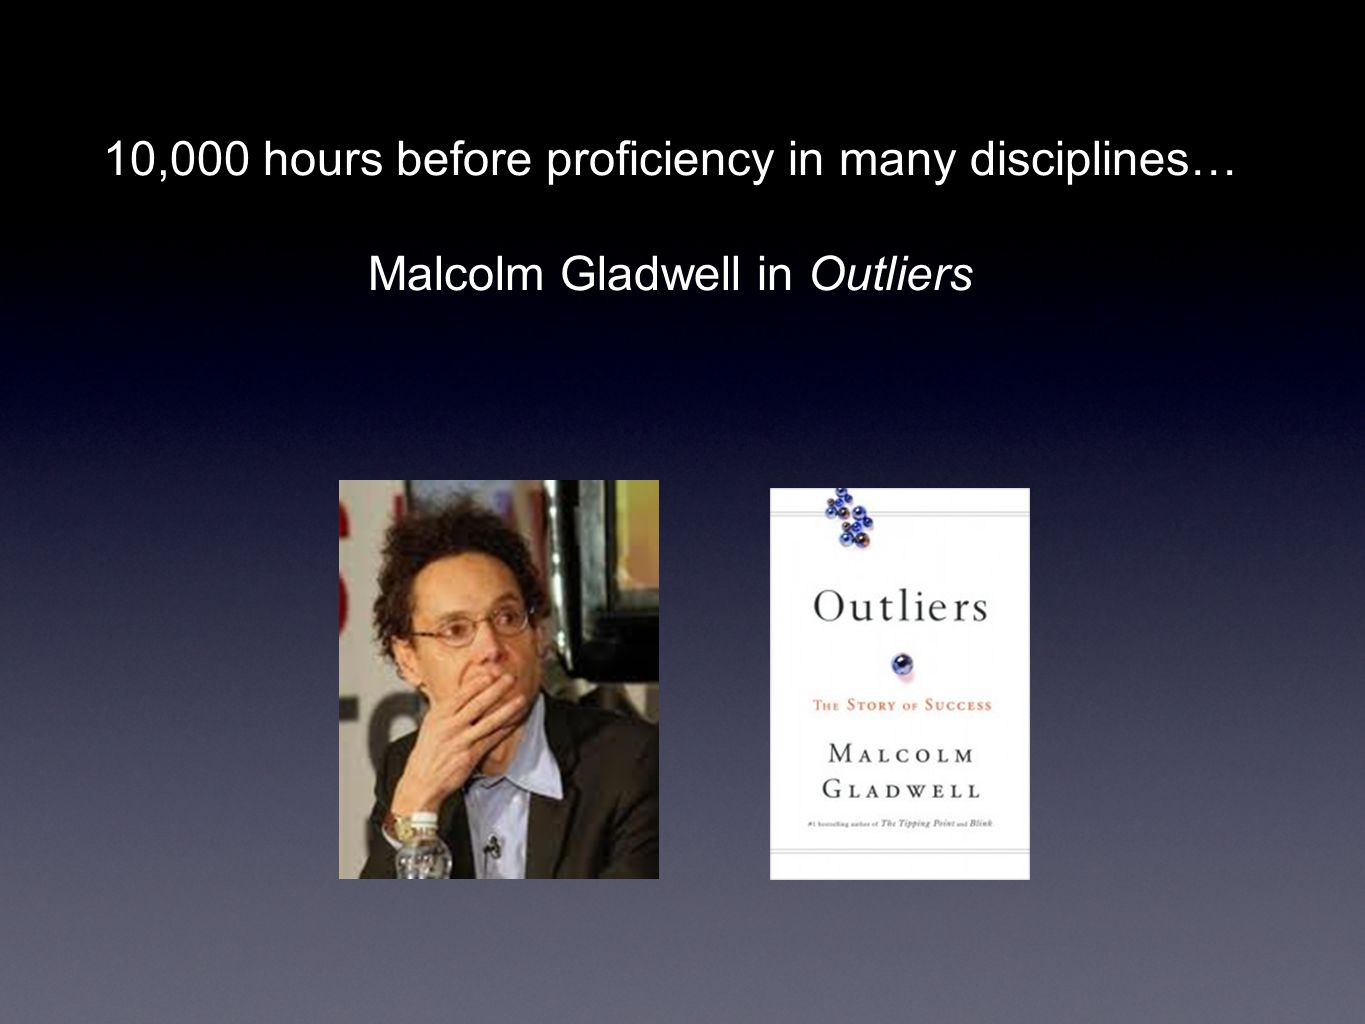 10,000 hours before proficiency in many disciplines… Malcolm Gladwell in Outliers